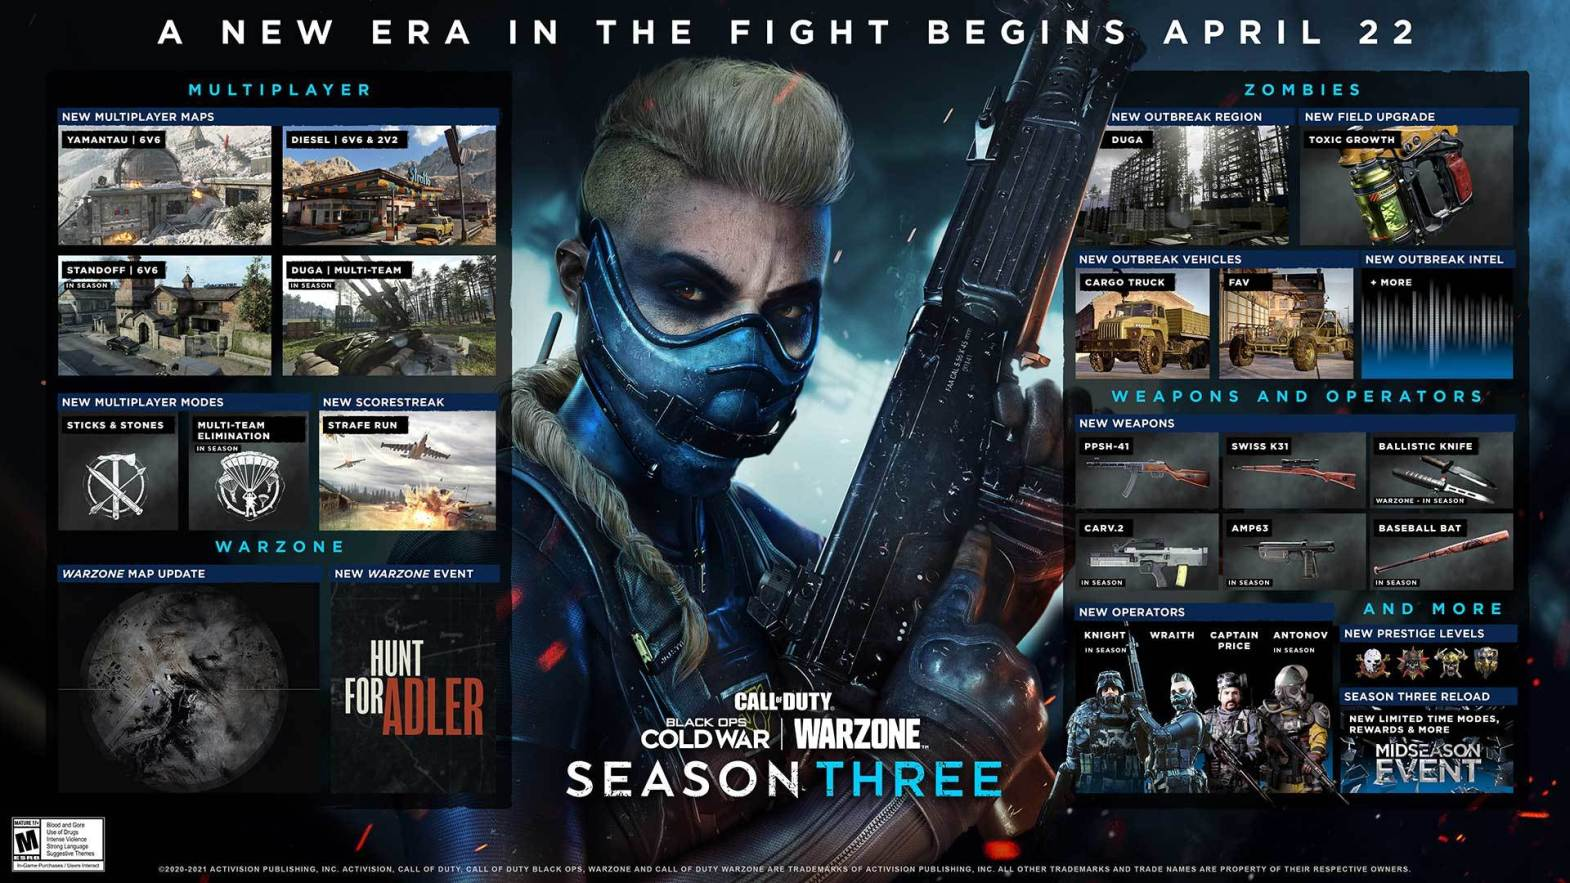 Season 3 of Call of Duty: Black Ops Cold War and Warzone revealed roadmap